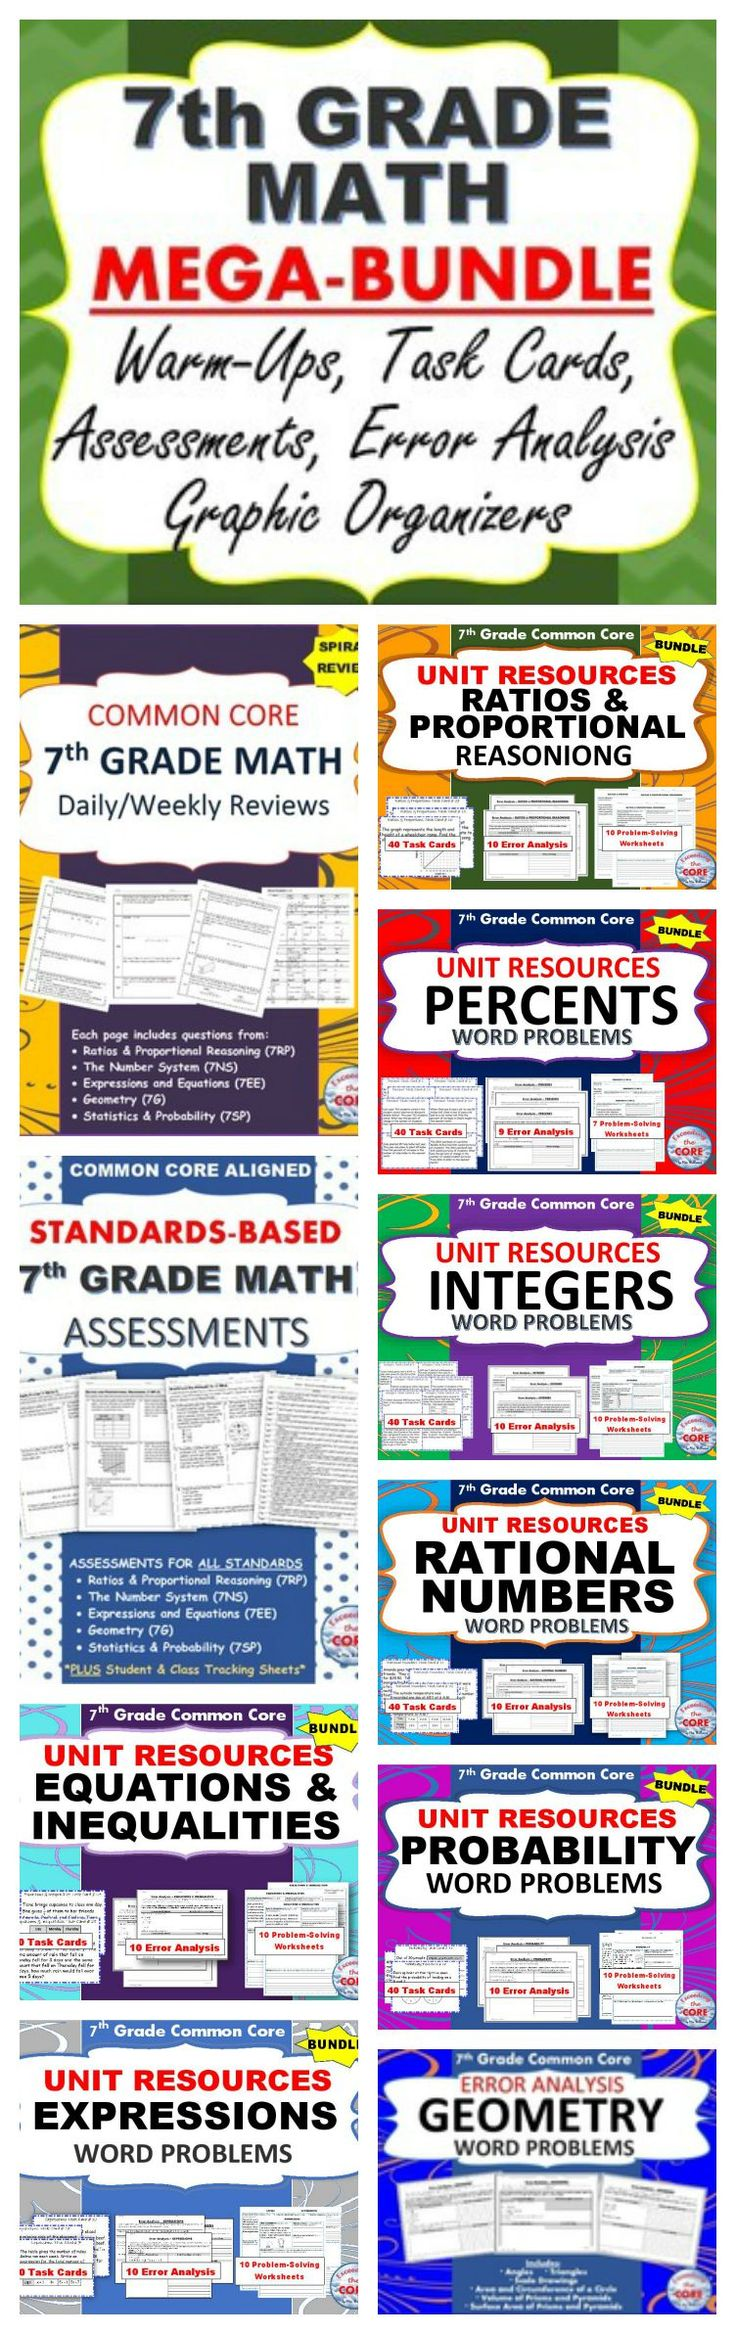 This 7th GRADE COMMON CORE MEGA-BUNDLE includes 27 of my top selling resources (over 275 pages).  As a current 7th grade math teacher, I am using the activities in this bundle for warm-ups, homework, math centers, assessments, exit tickets, and test prep. Topics include Ratios and Proportional Reasoning, Percents, Rational Numbers, Integers, Geometry, Statistics and Probability